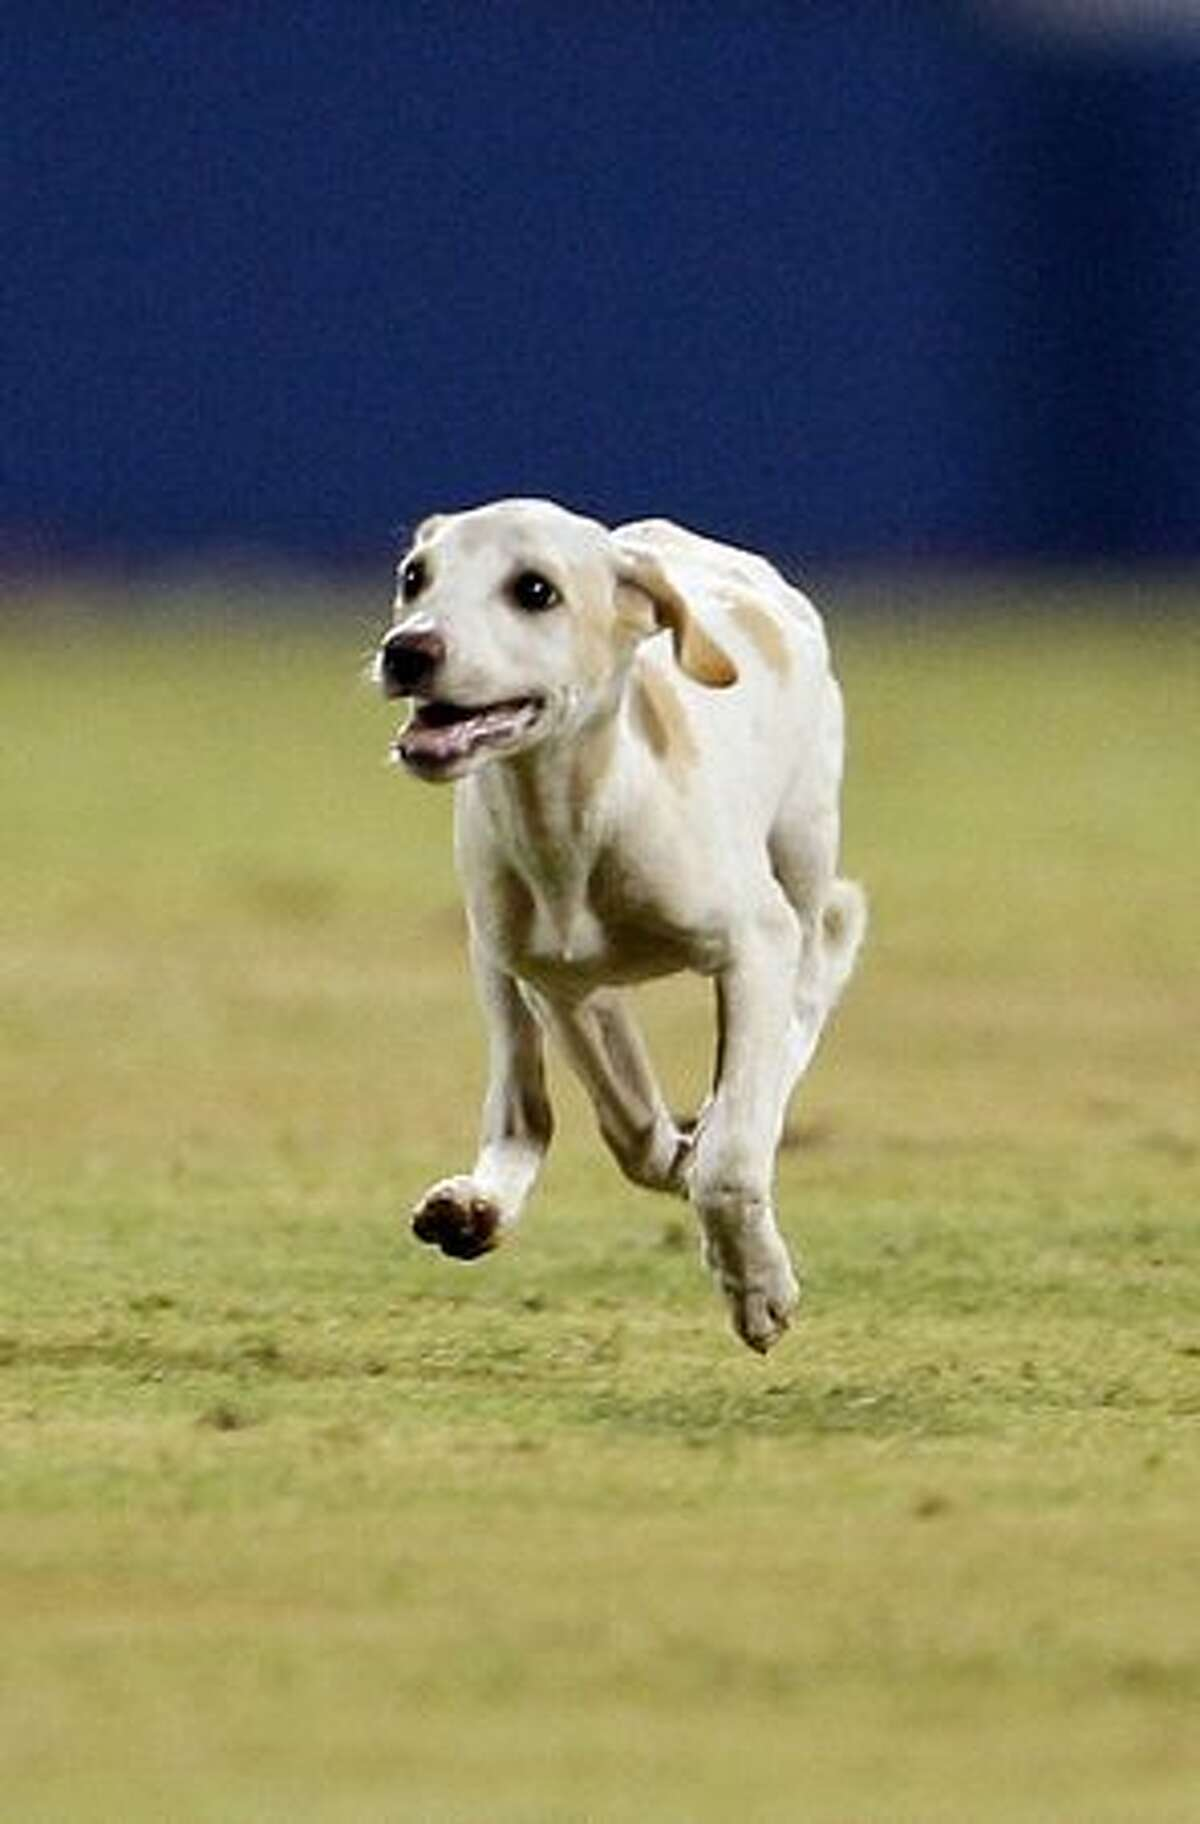 A dog runs on the pitch during the Cricket World Cup match between India and West Indies in Chennai, India, Sunday, March 20, 2011. (AP Photo/Kirsty Wigglesworth)